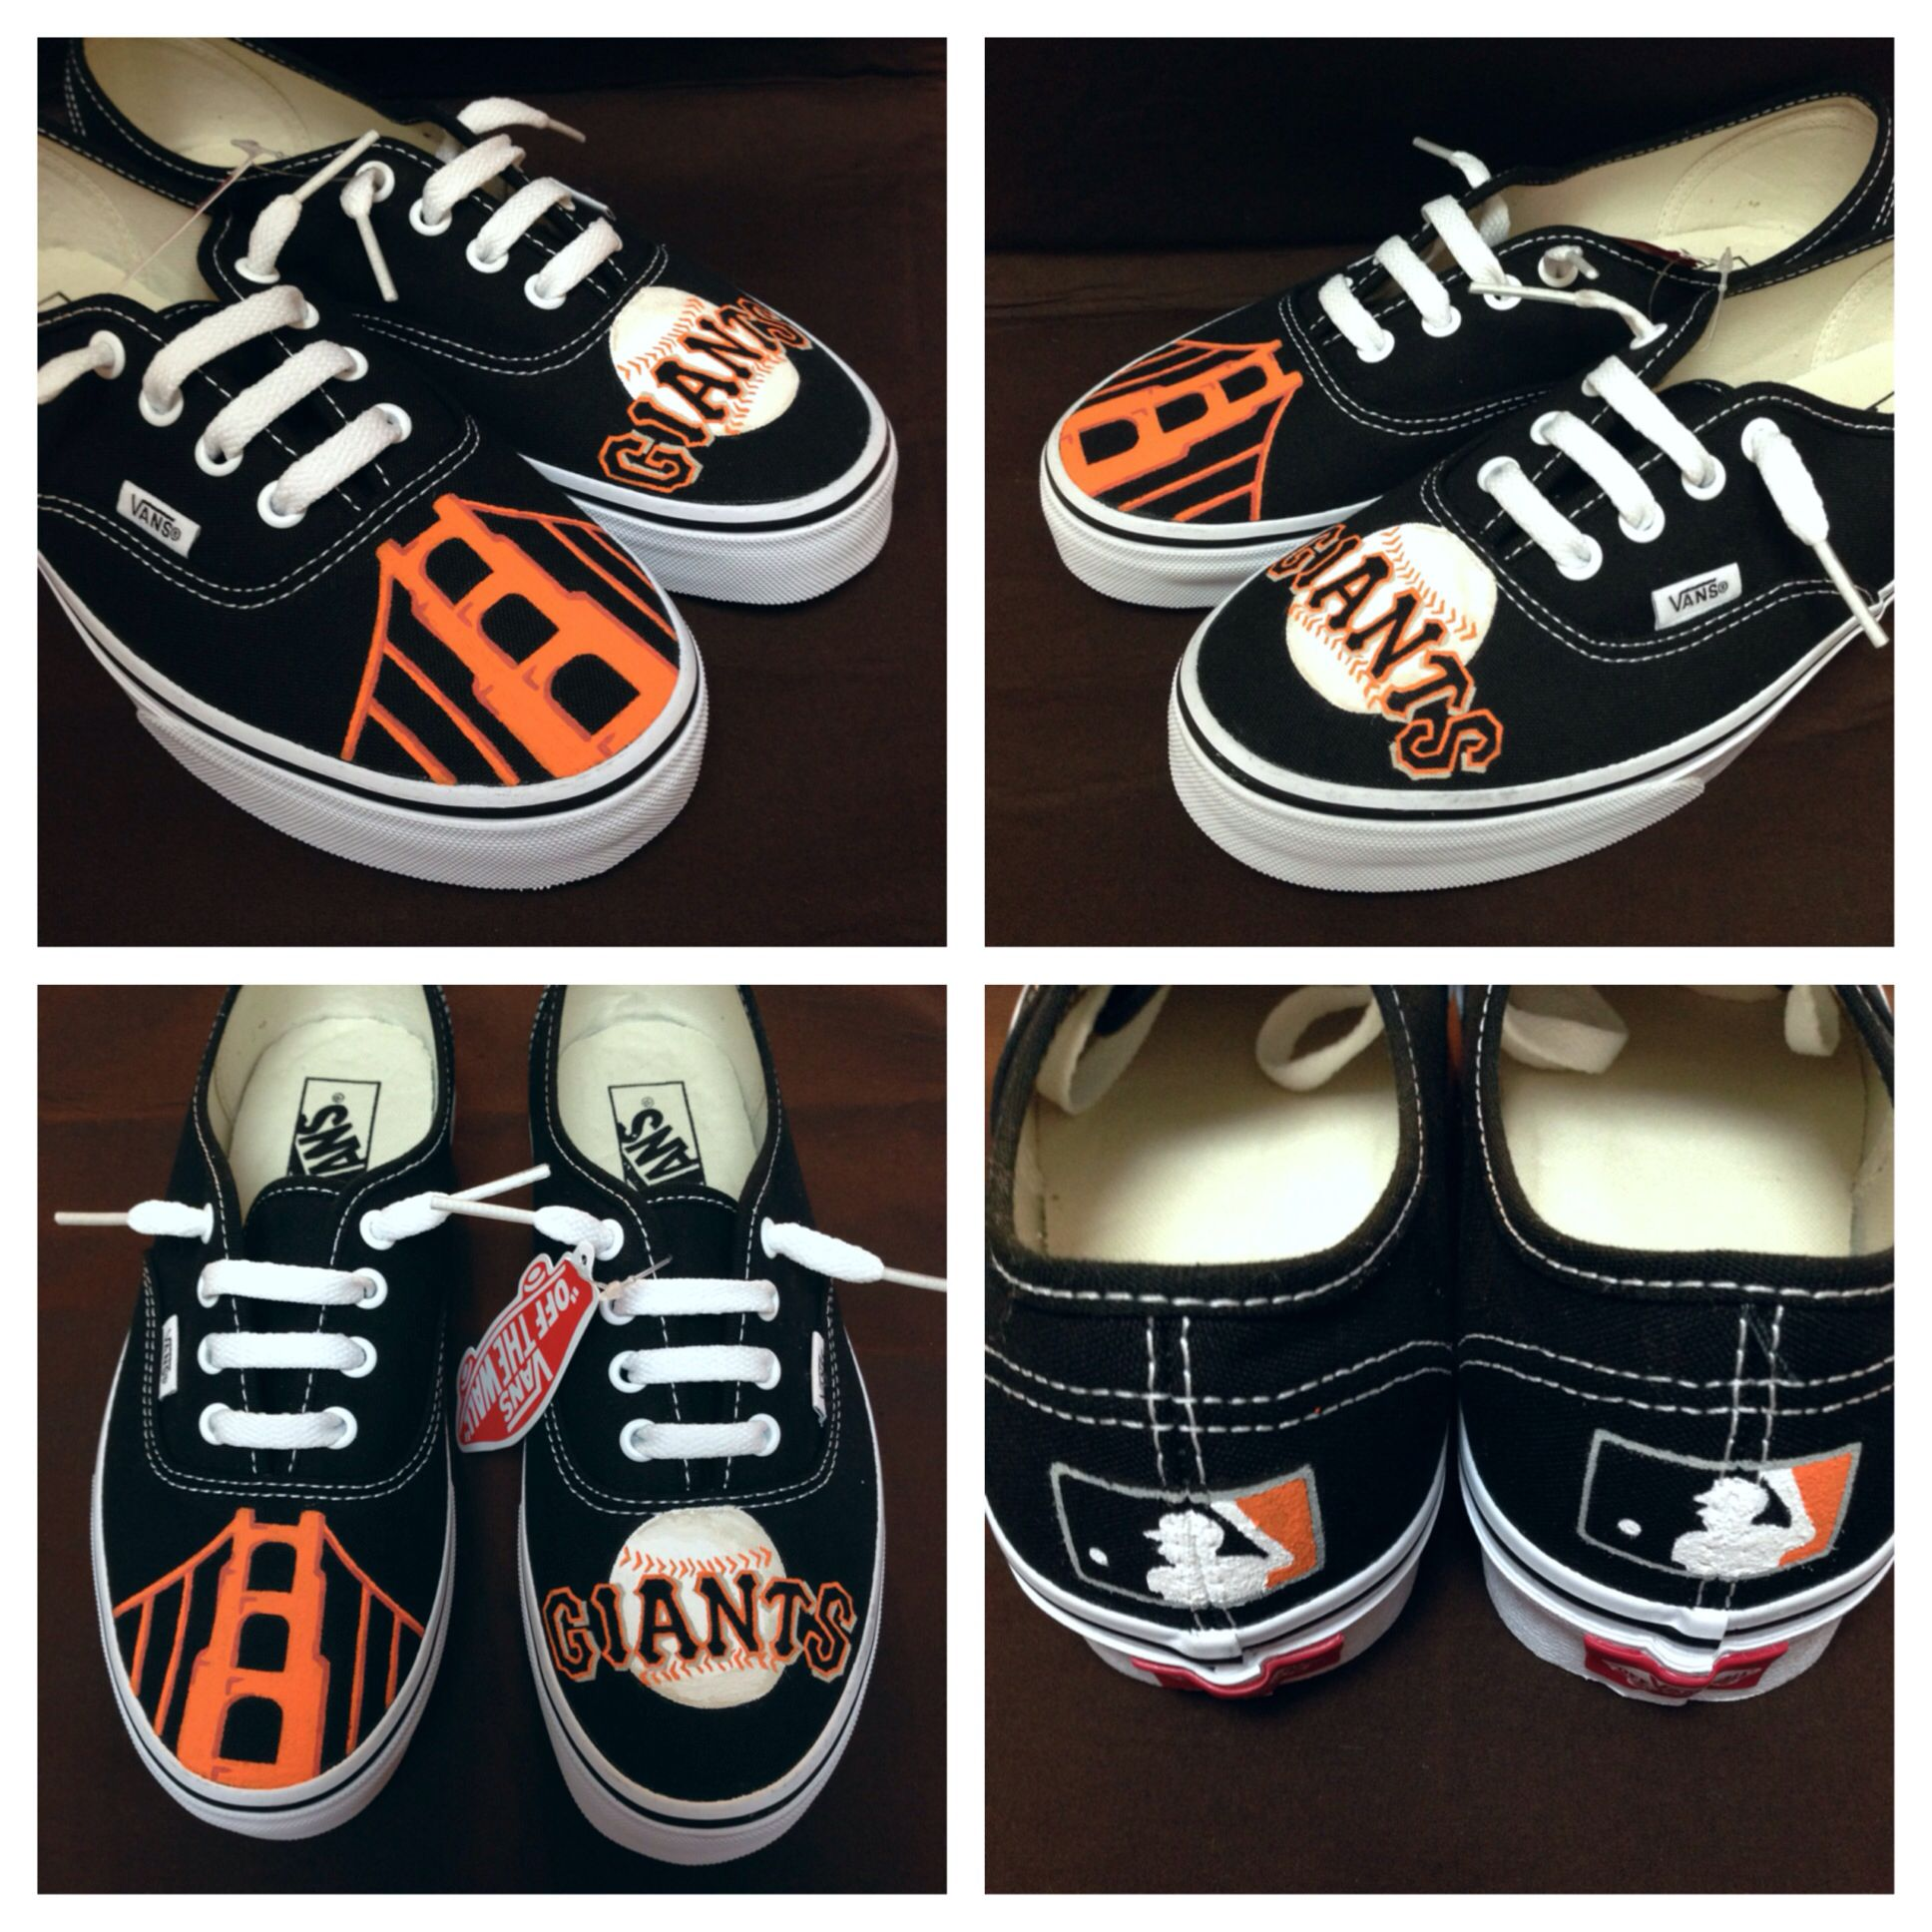 ee11e43df34186 Customized women s Authentic Vans in San Francisco Giants theme size ...